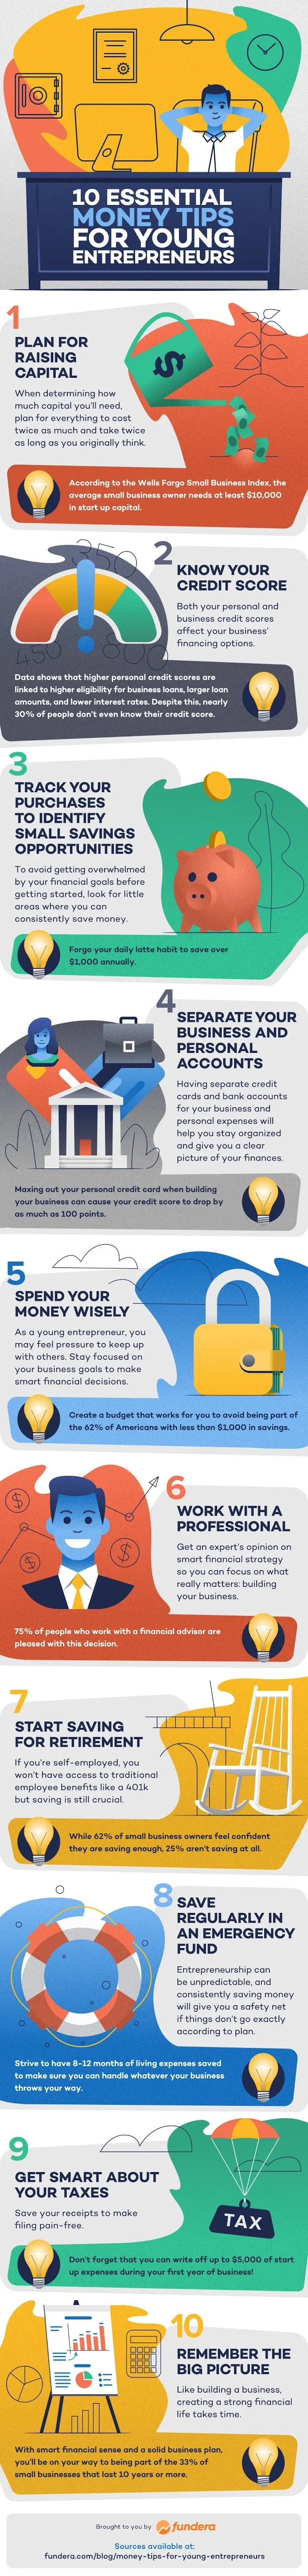 10 Essential Money Tips for Young Entrepreneurs